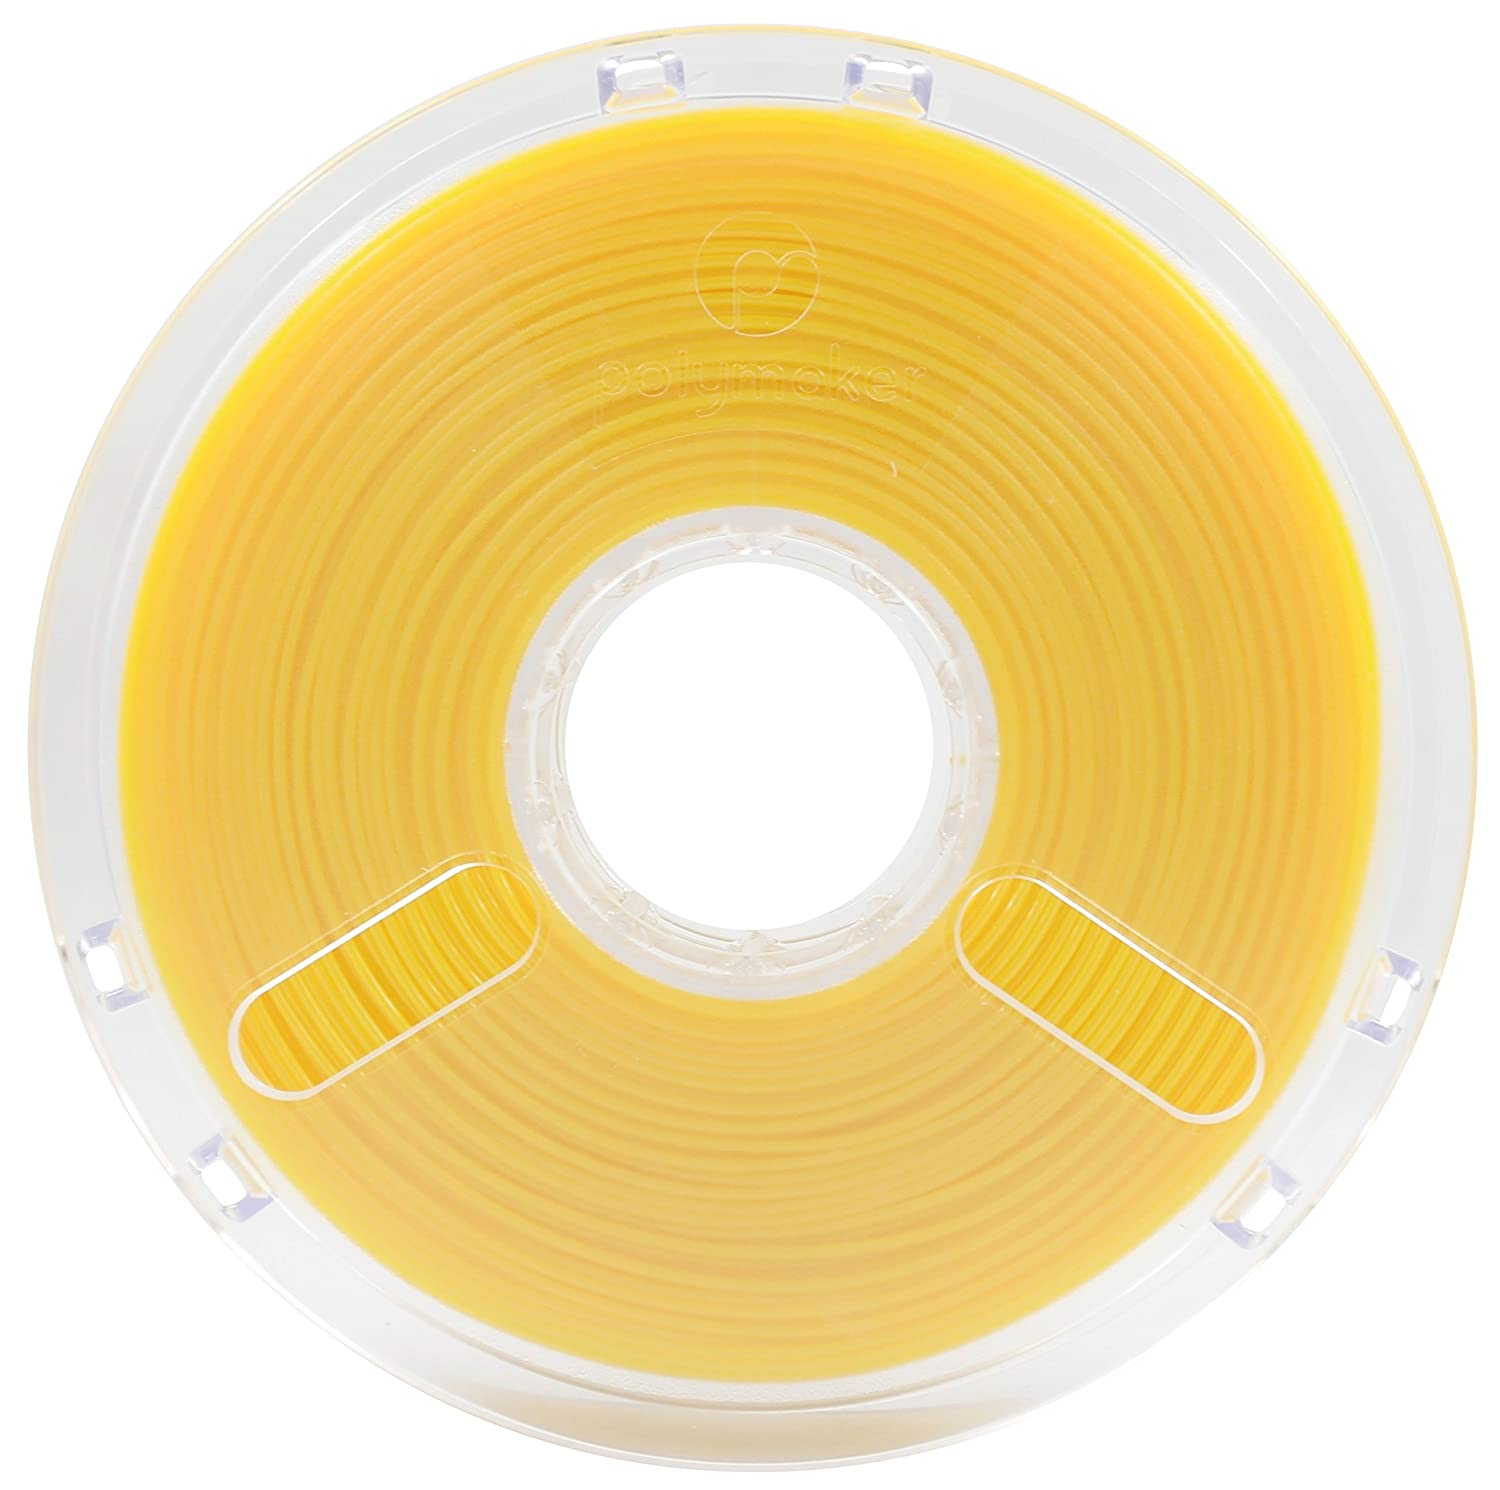 buildtak pm70109 polyflex flexible filamento, TPU, 0,75 kg Spool ...